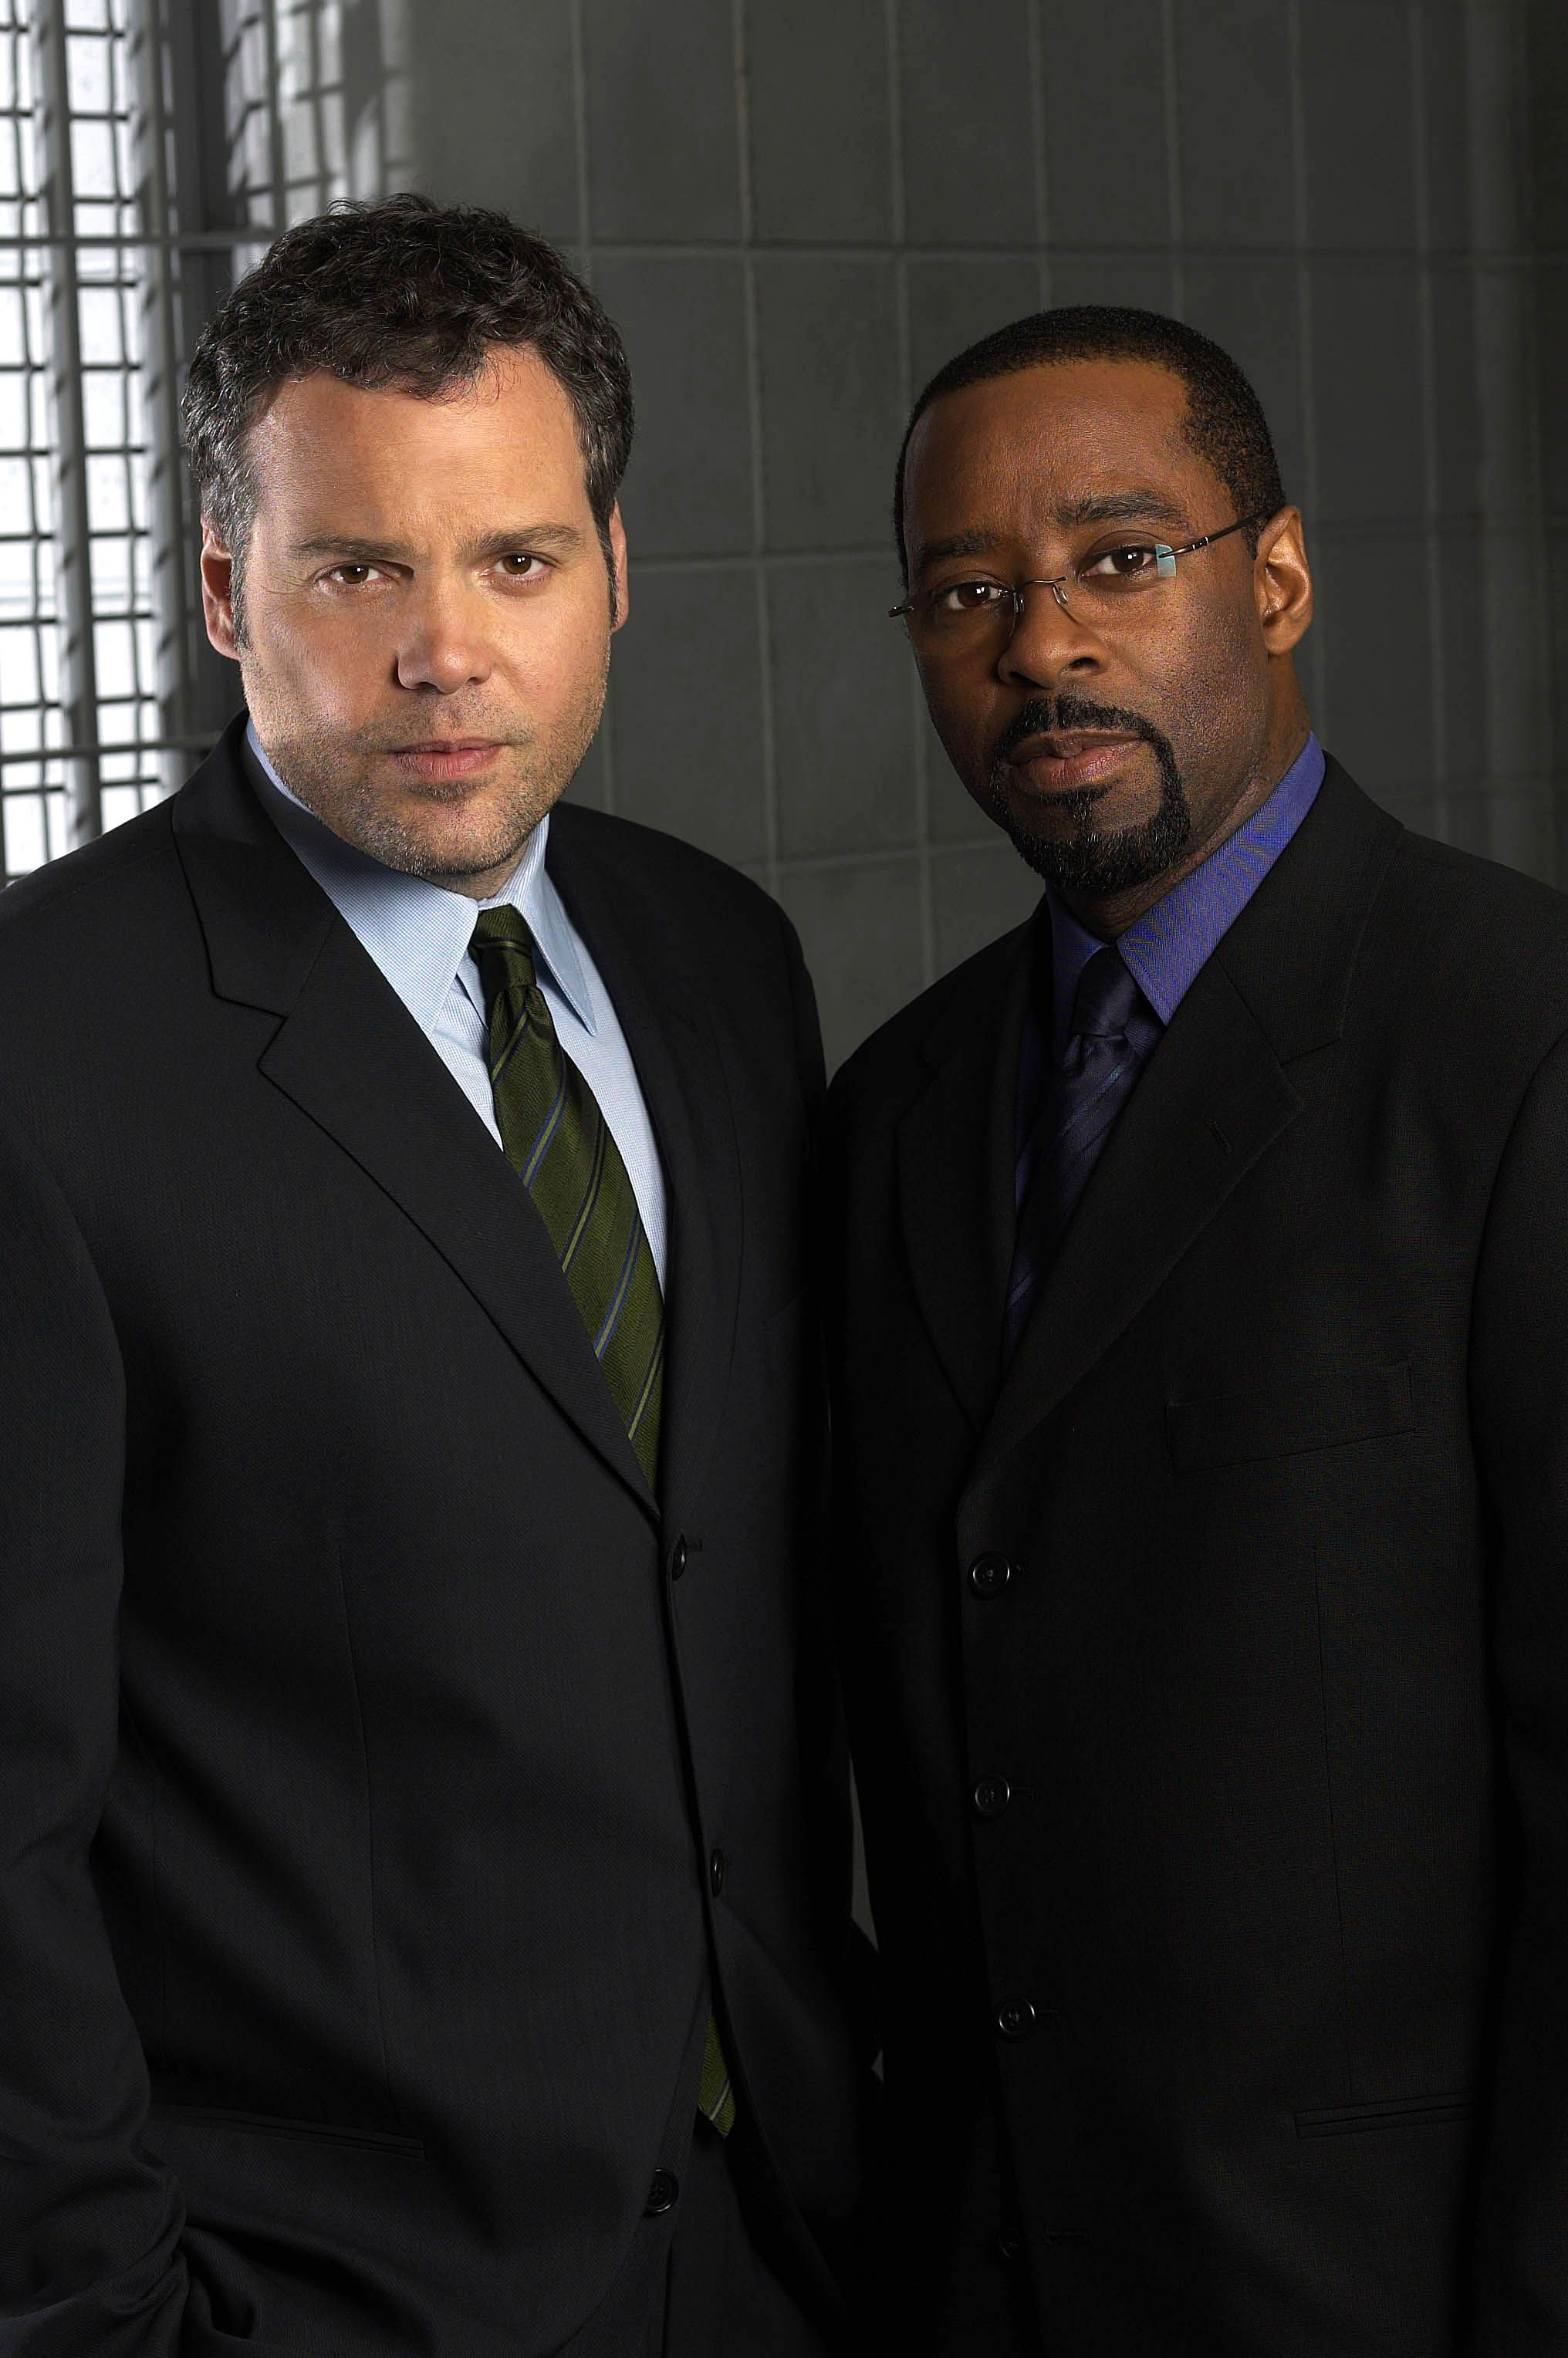 Vincent D Onofrio And Courtney B Vance Law Order Criminal Intent Law And Order Actors Vincent D Onofrio